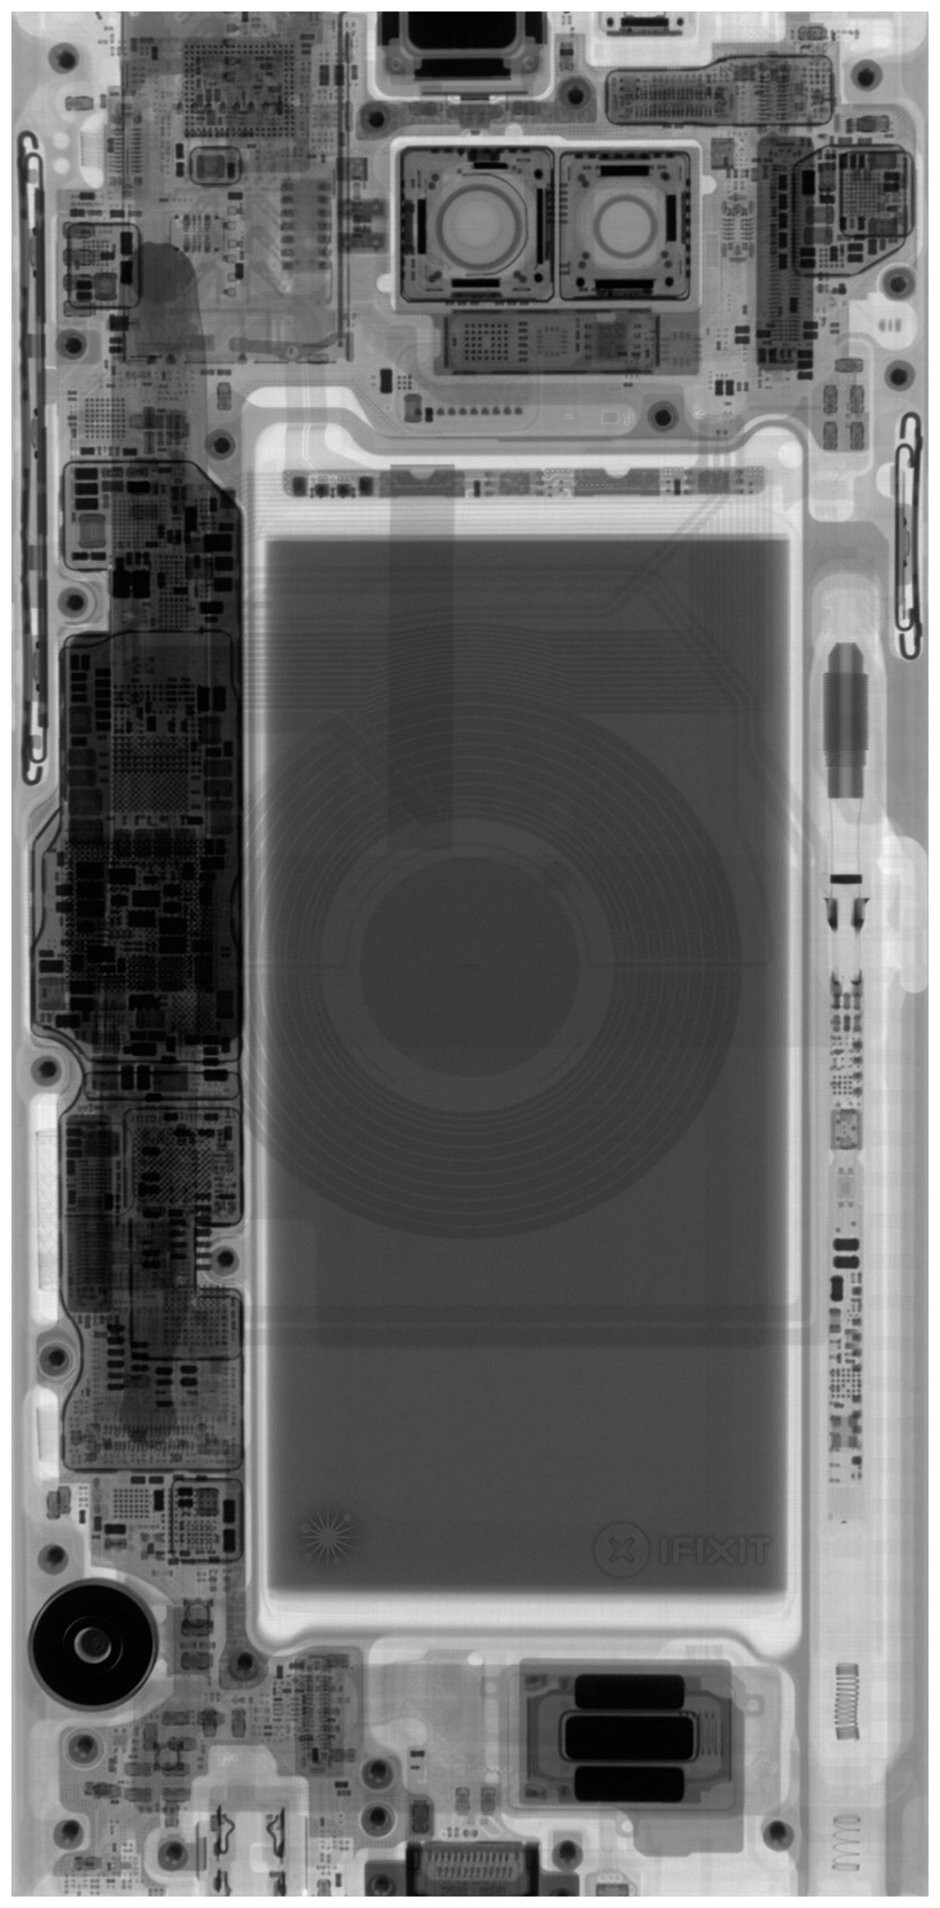 Galaxy Note 9 with S Pen, images courtesy of iFixit - Galaxy Note could have had 800mAh bigger battery and better cameras had Samsung removed the S Pen